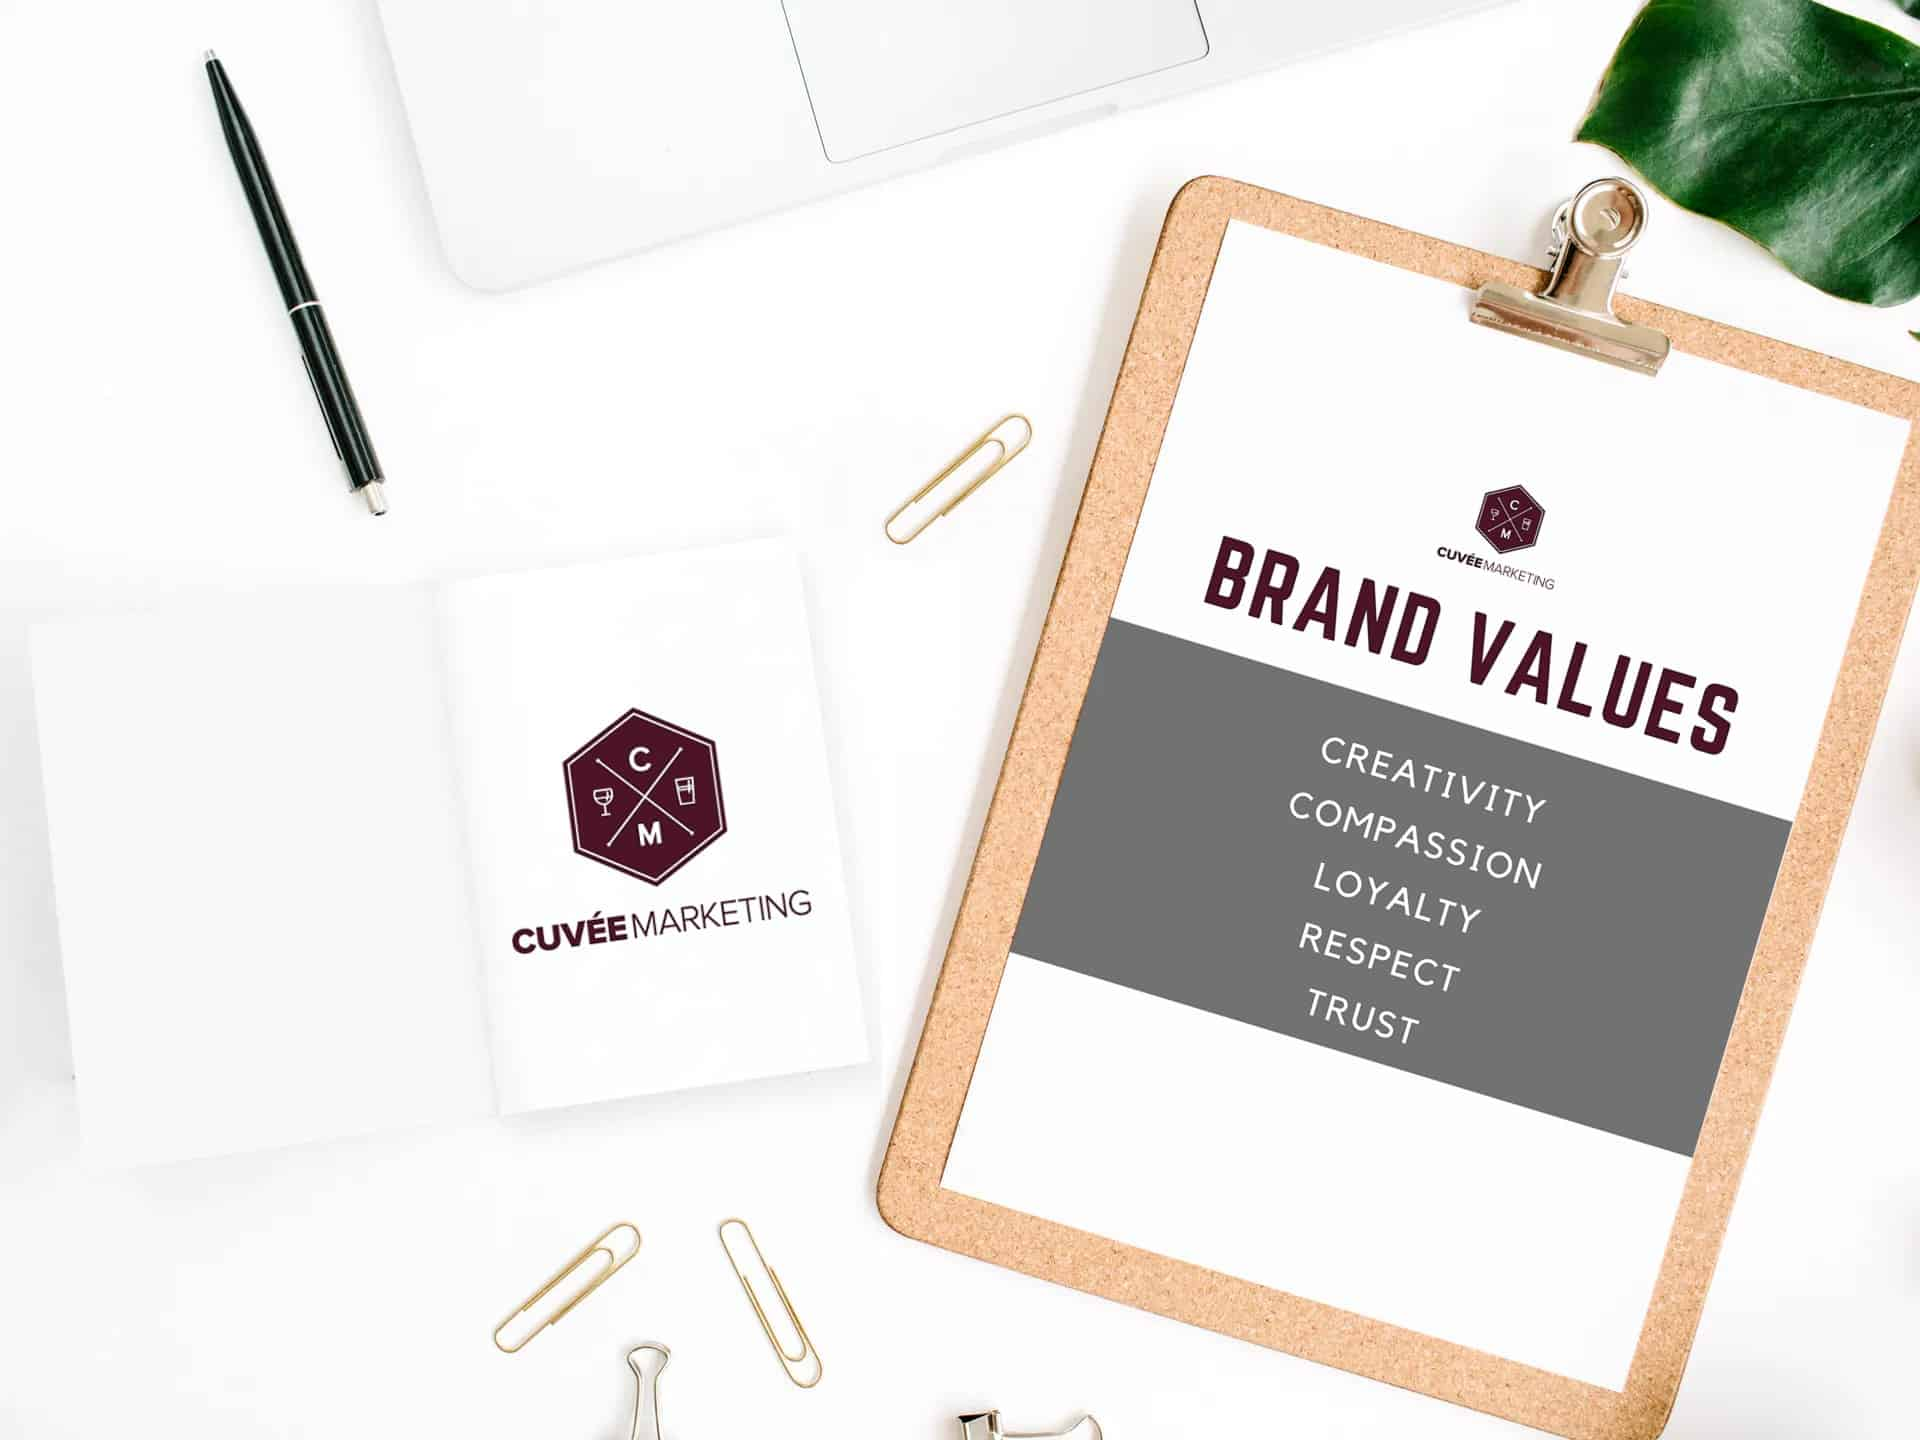 Cuvee Marketing Brand Values